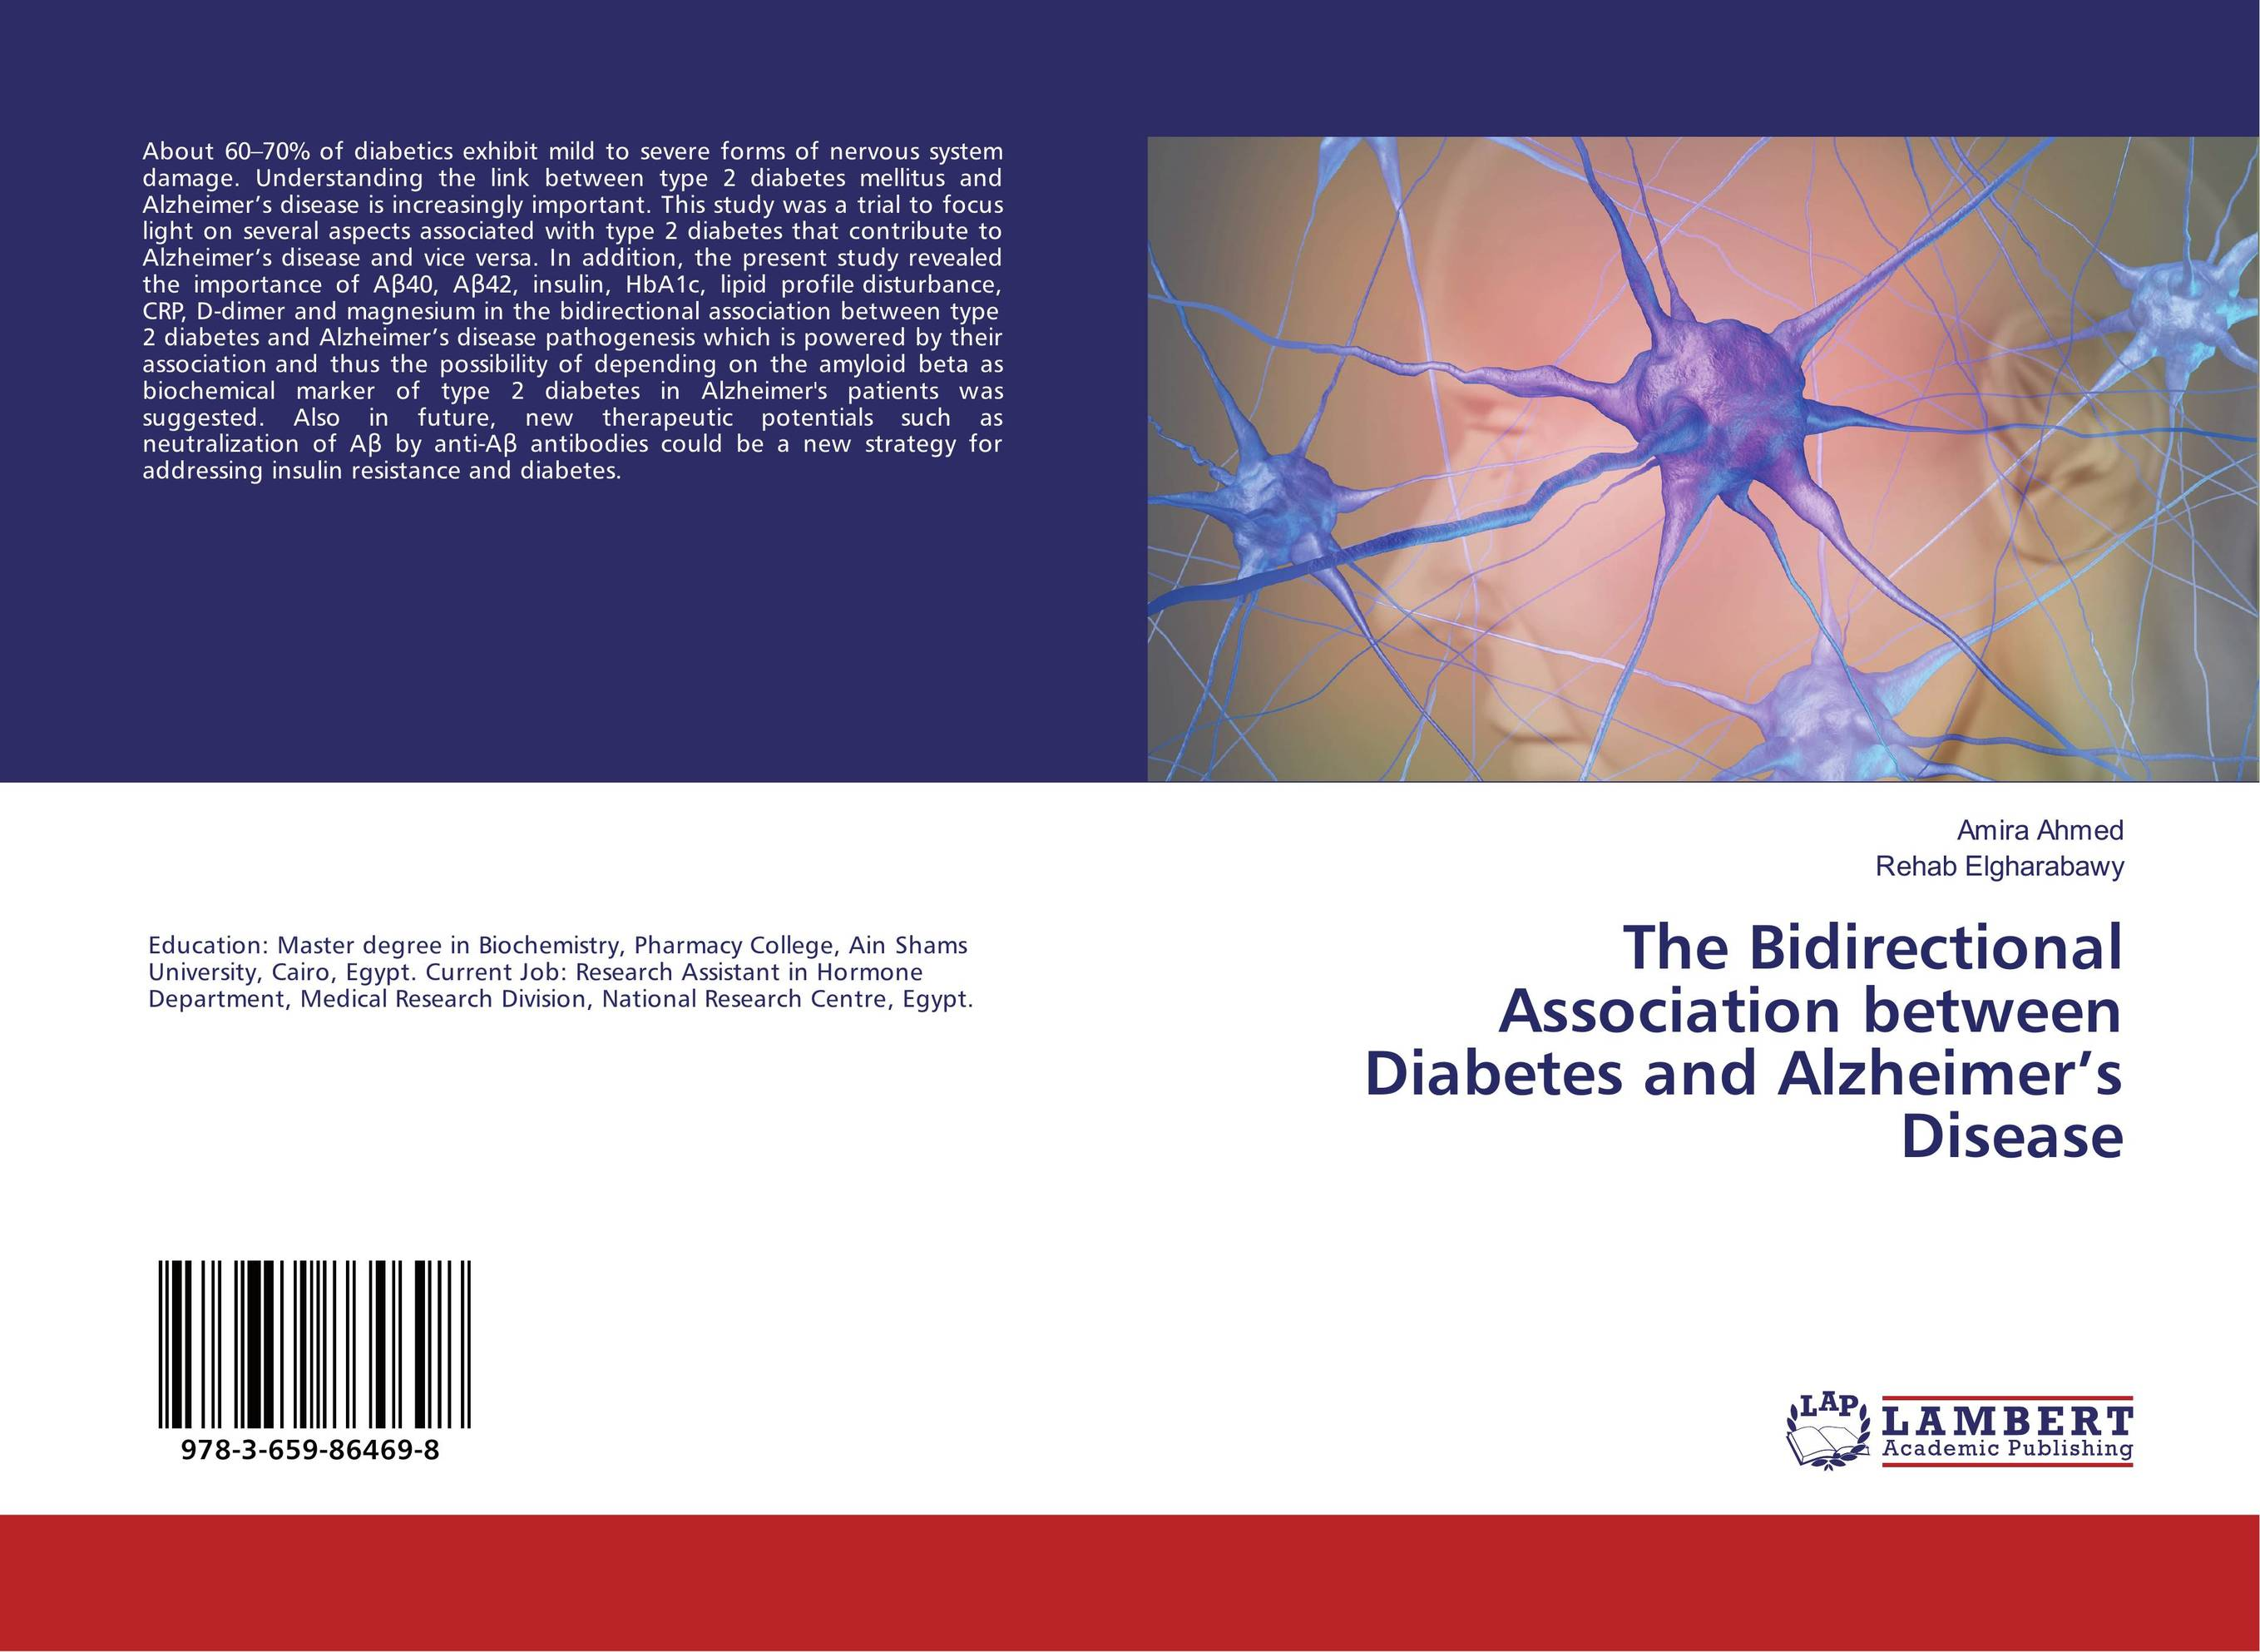 The Bidirectional Association between Diabetes and Alzheimer's Disease metabolic benefits of diet and exercise on type 2 diabetes